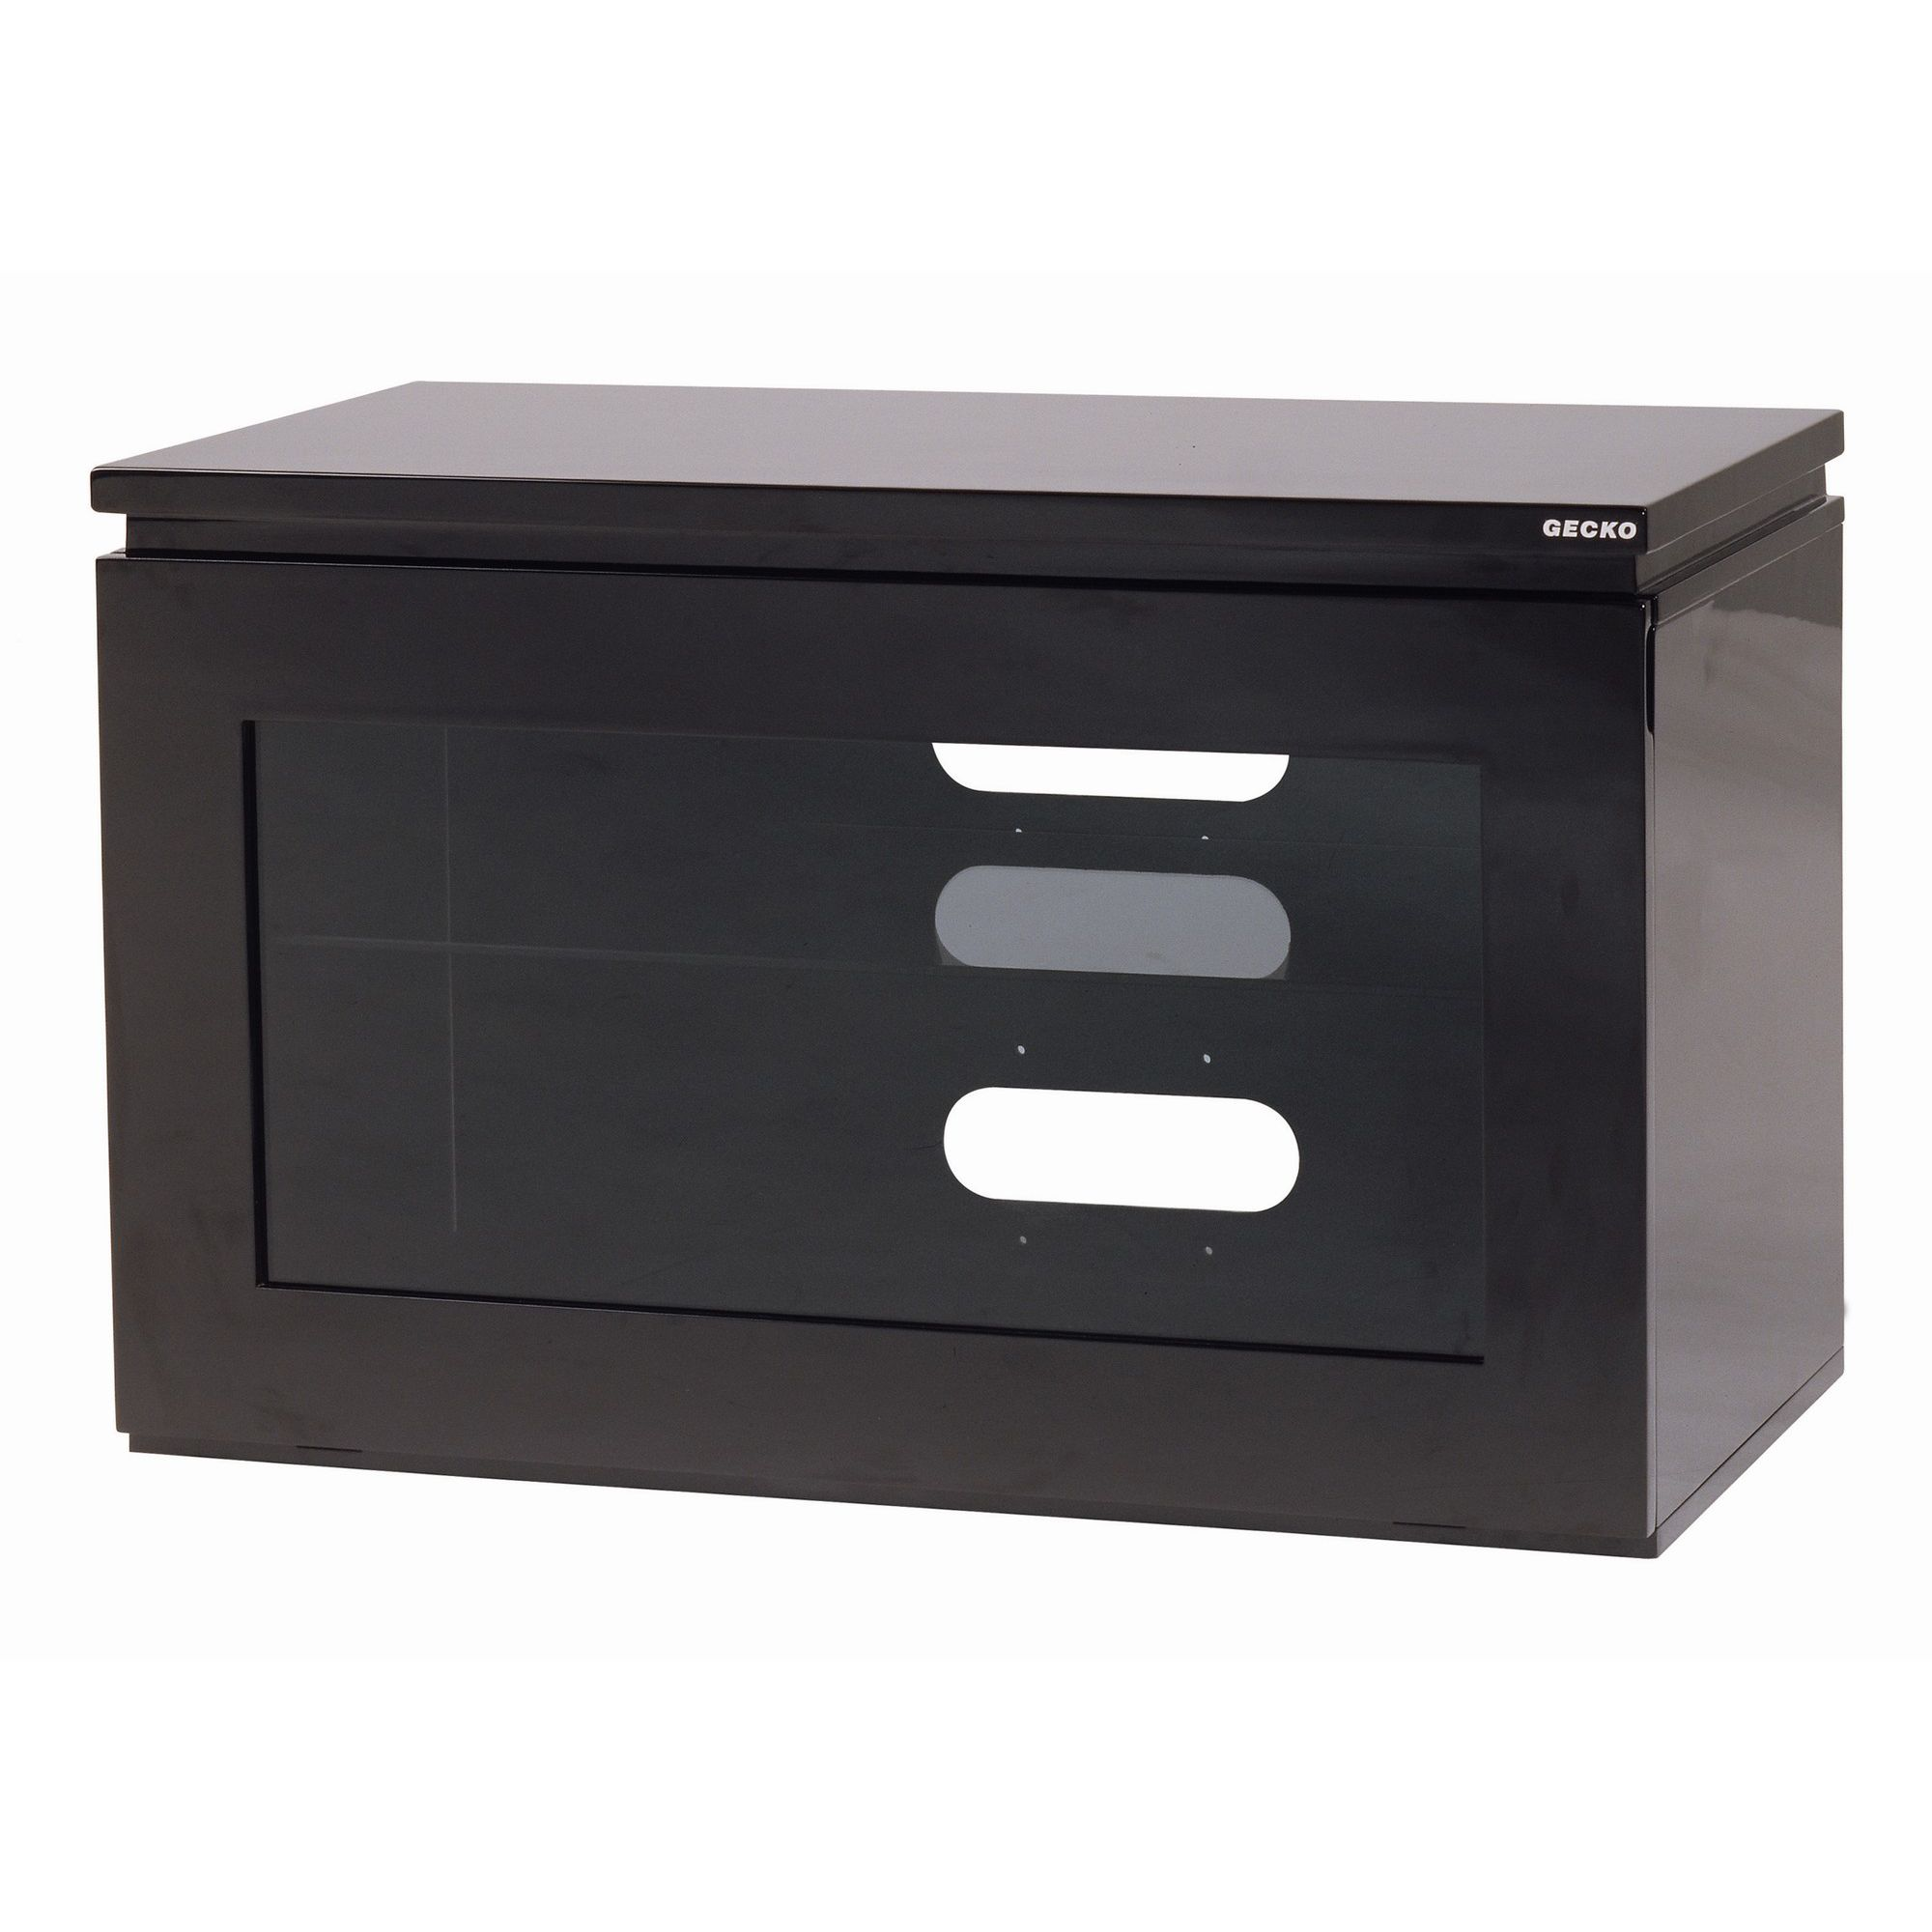 Gecko Reflect TV Cabinet - Black Gloss - 80cm at Tesco Direct